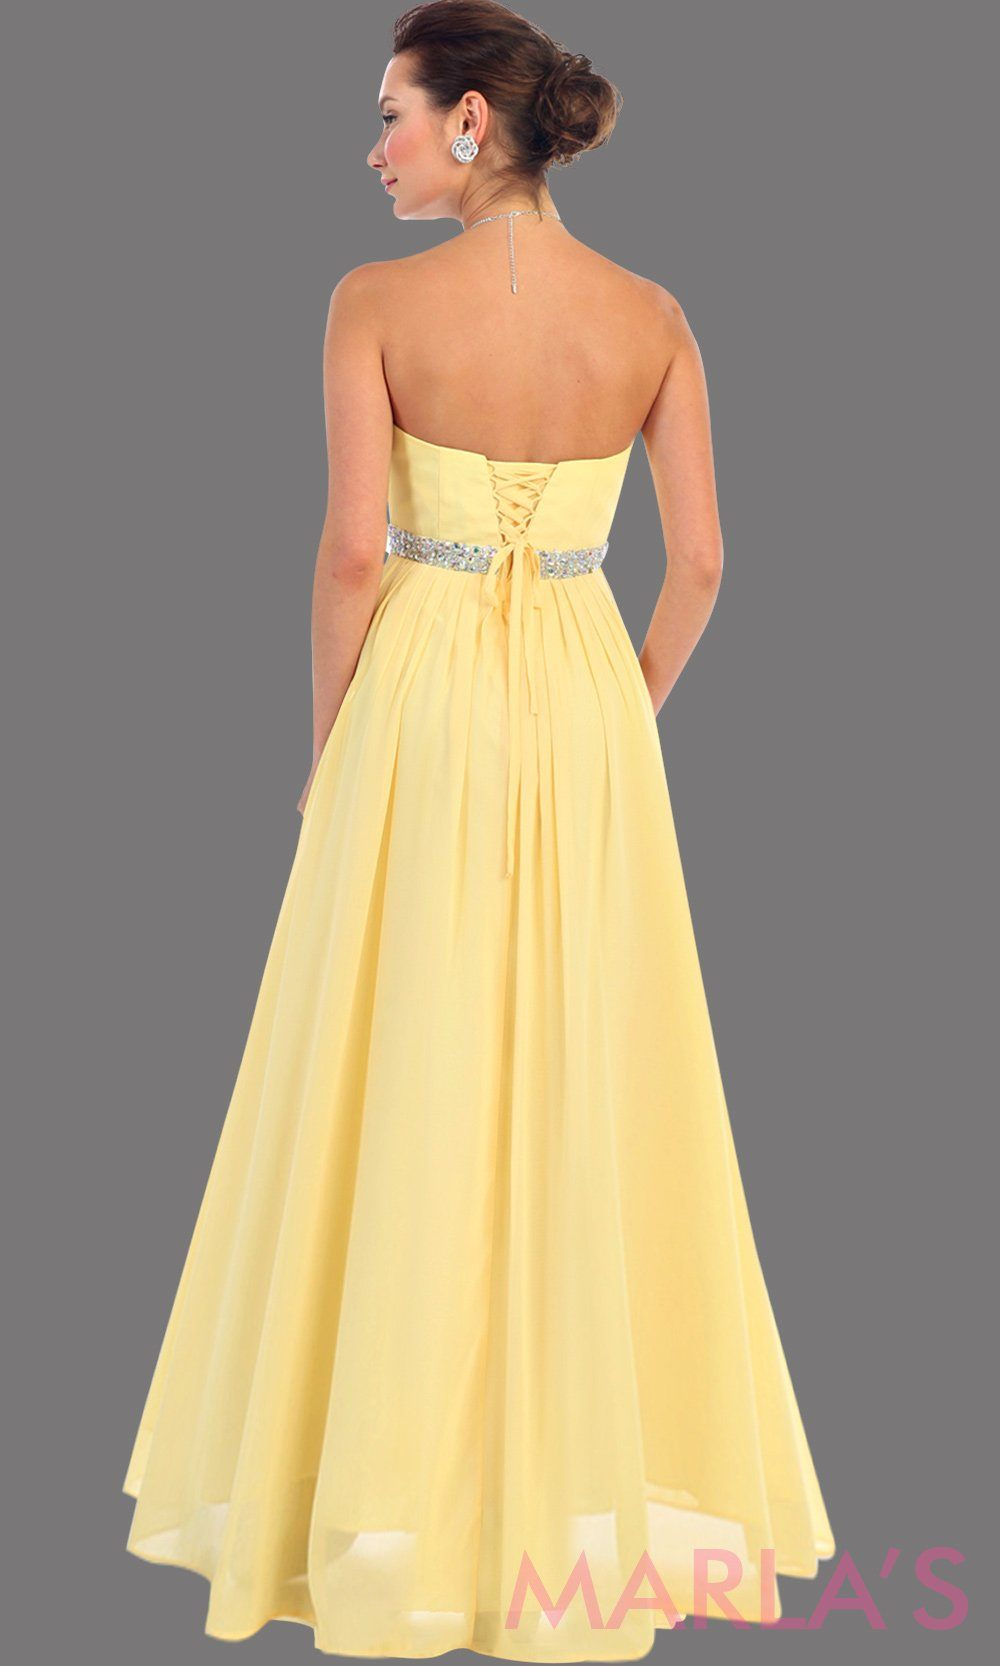 Strapless Chiffon Gown With Rhinestone Marlasfashions